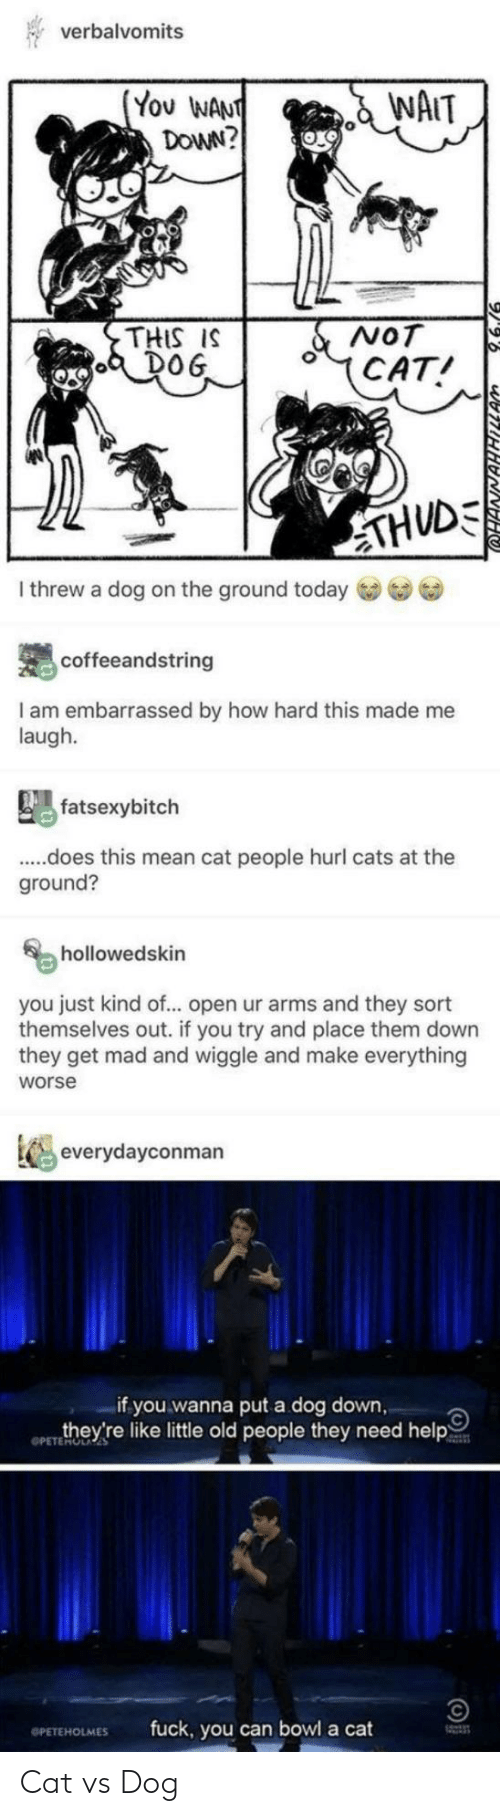 Cats, Fuck You, and Old People: verbalvomits  (You WANT  DOWN?  NAIT  NOT  (CAT!  THIS IS  DOG  THUDE  I threw a dog on the ground today  coffeeandstring  I am embarrassed by how hard this made  laugh.  me  fatsexybitch  ..does this mean cat people hurl cats at the  ground?  hollowedskin  you just kind of... open ur arms and they sort  themselves out. if you try and place them down  they get mad and wiggle and make everything  worse  everydayconman  if you wanna put a dog down,  they're like little old people they need help  OPETEMOLAES  fuck, you can bowl a cat  OPETEHOLMES  WNAHHILLA Cat vs Dog